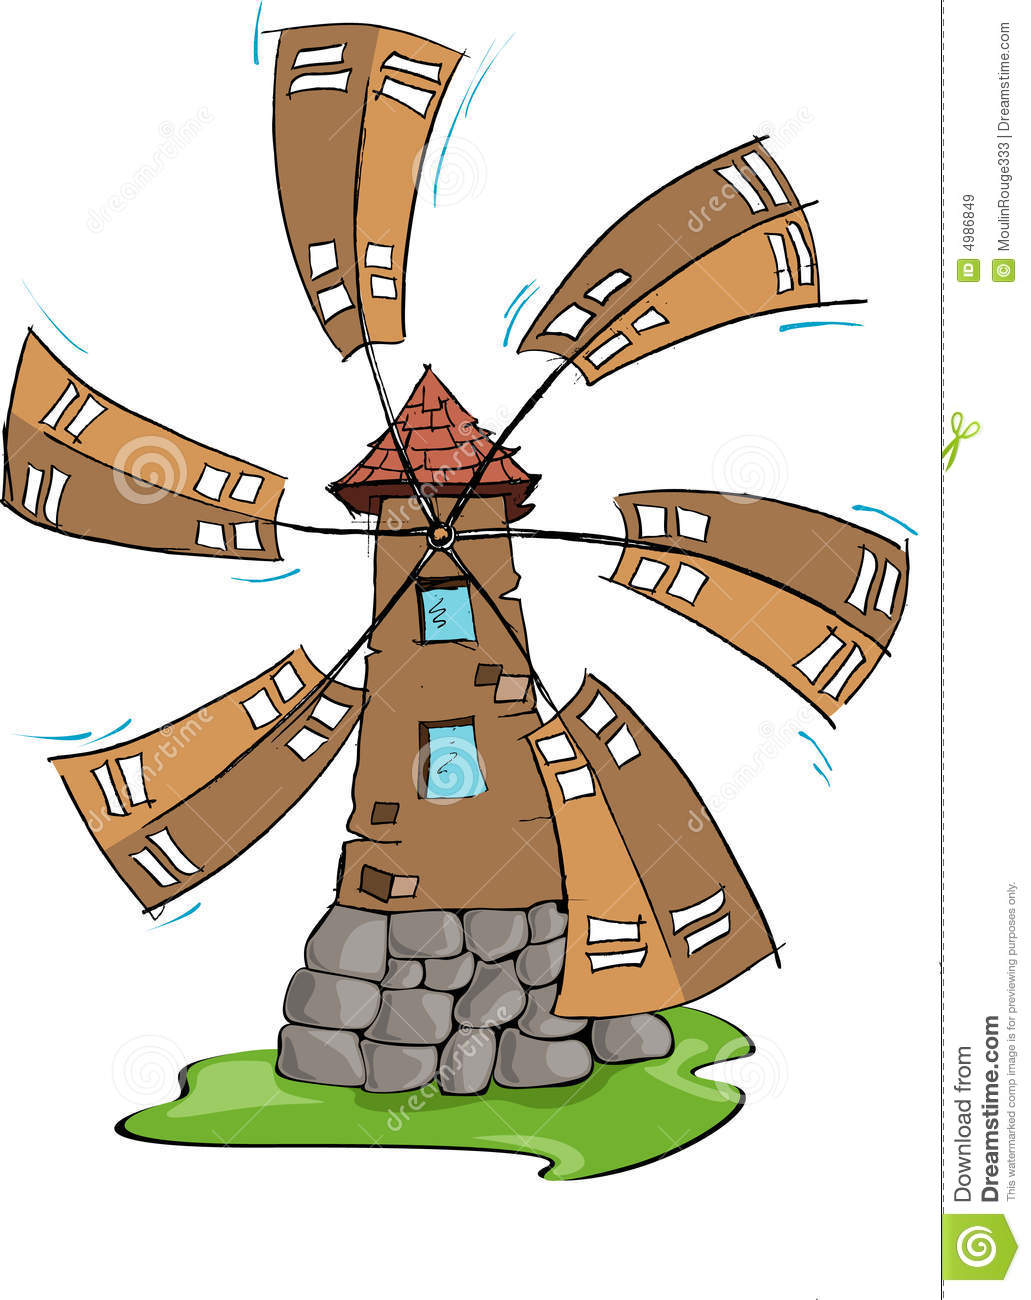 Windmill, Hand Draw Royalty Free Stock Images - Image: 4986849